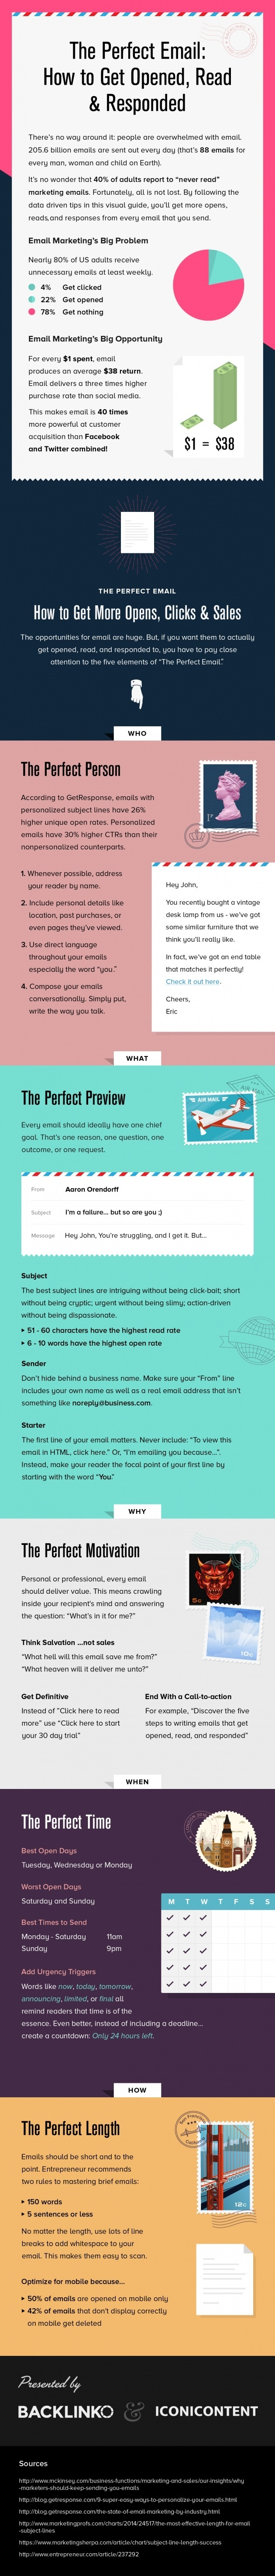 The Perfect Email: How to Get Opened, Read & Responded [Infographic] | Social Media Today